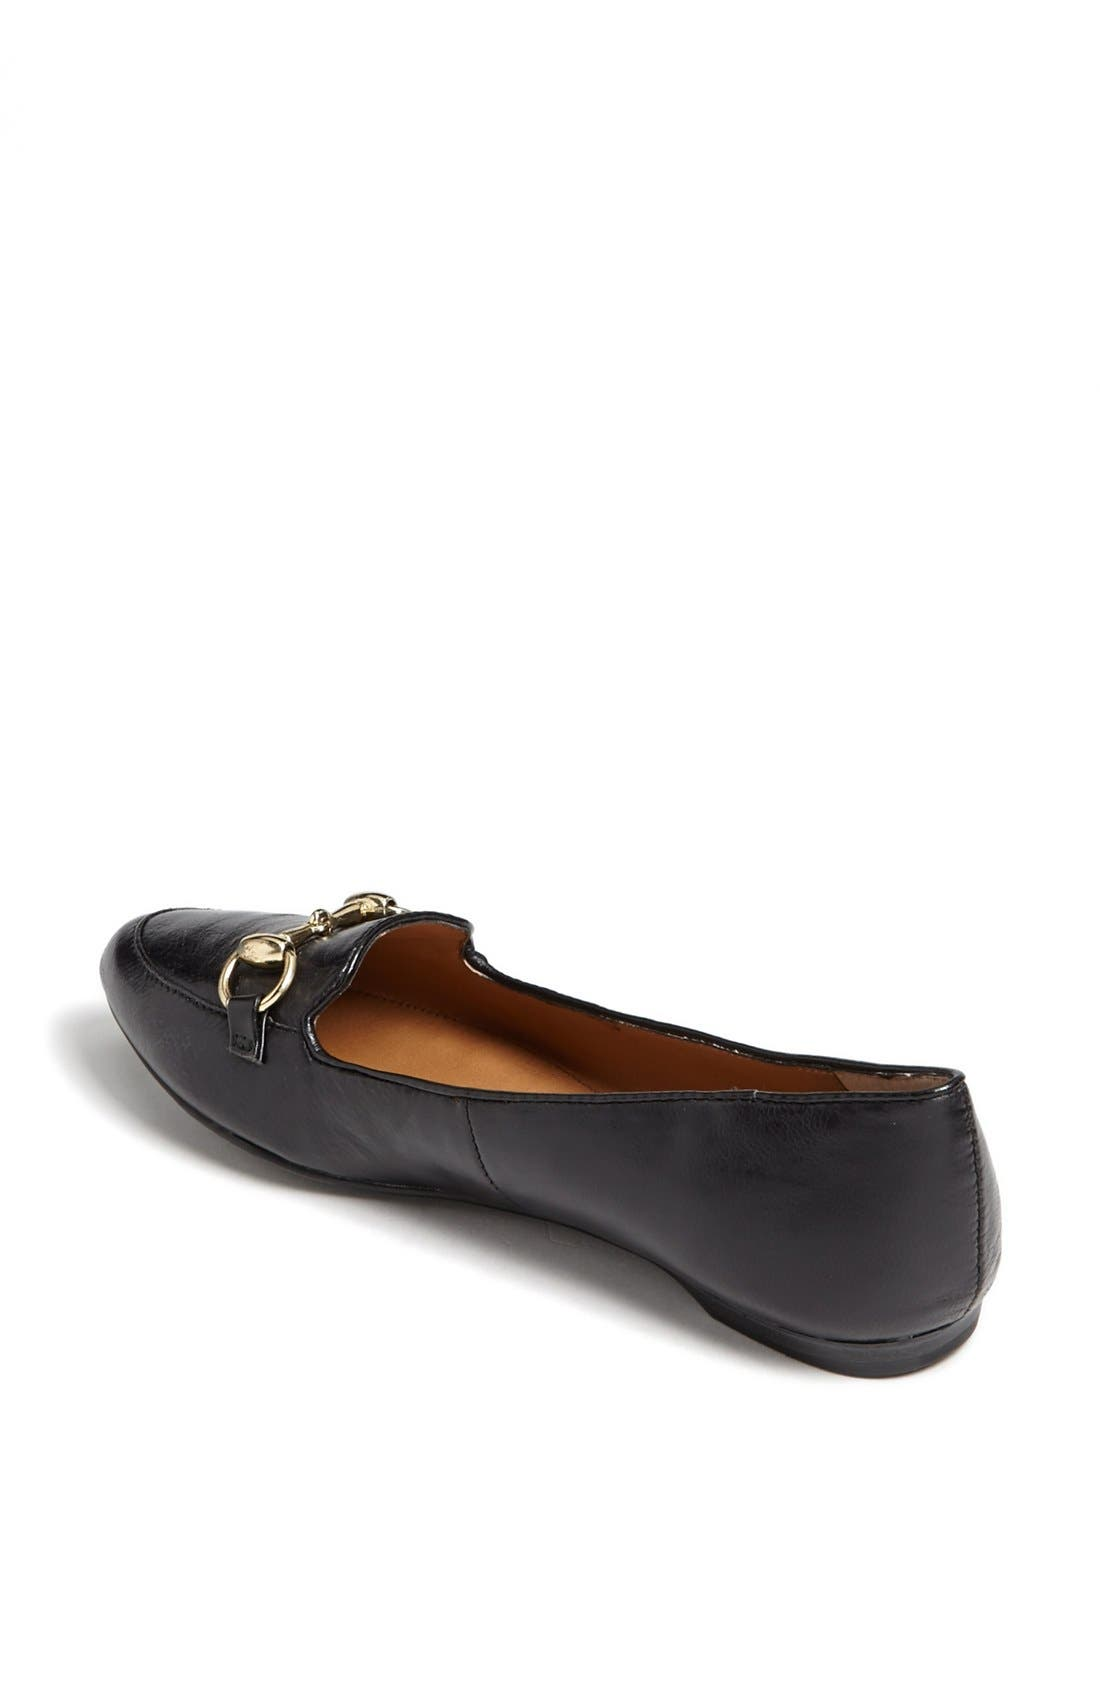 DV BY DOLCE VITA,                             'Langely' Flat,                             Alternate thumbnail 2, color,                             001